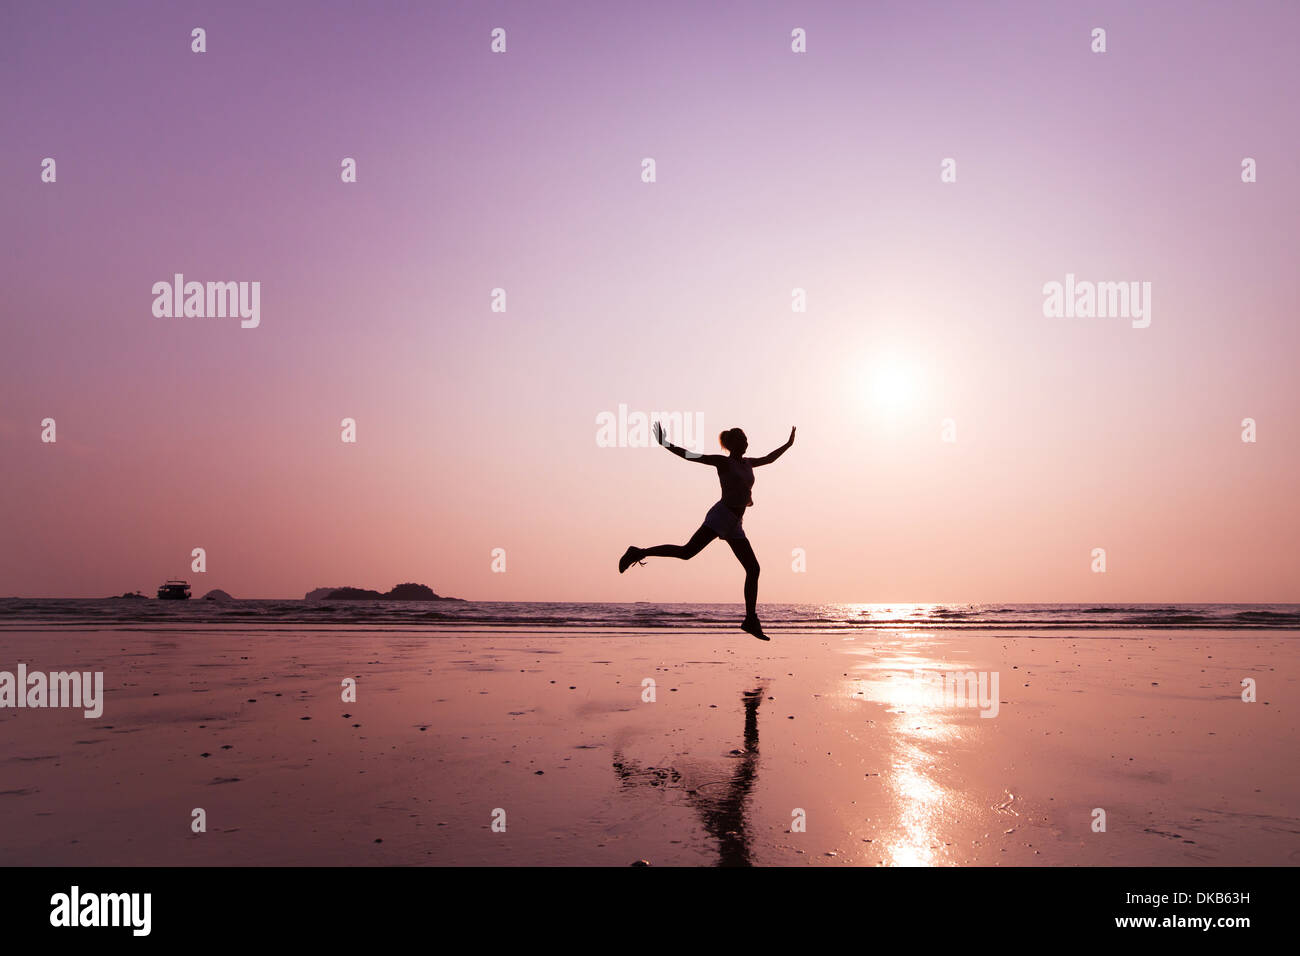 young woman jumping on the beach - Stock Image